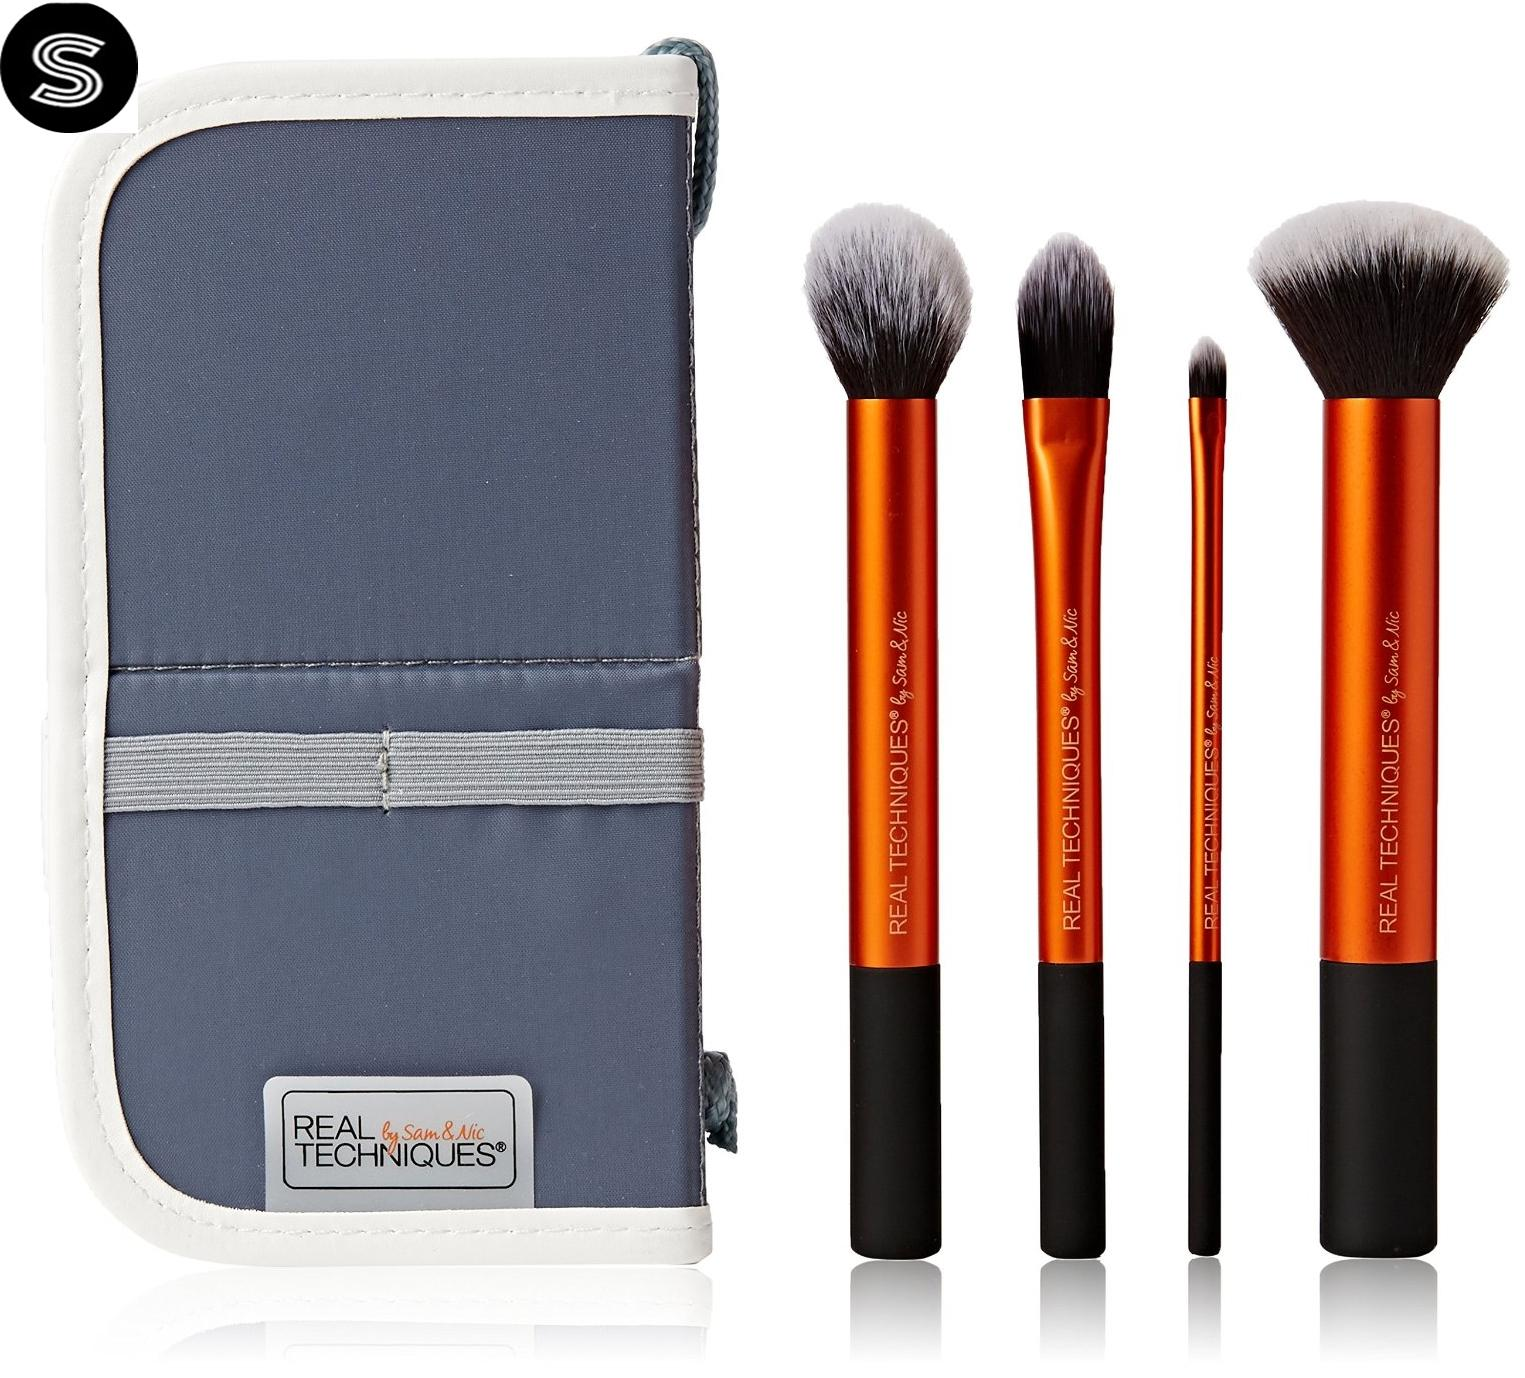 Buy Sell Cheapest Real Techniques 1419 Best Quality Product Deals 1407 Blush Brush Core New Collection 4 In 1 Makeup